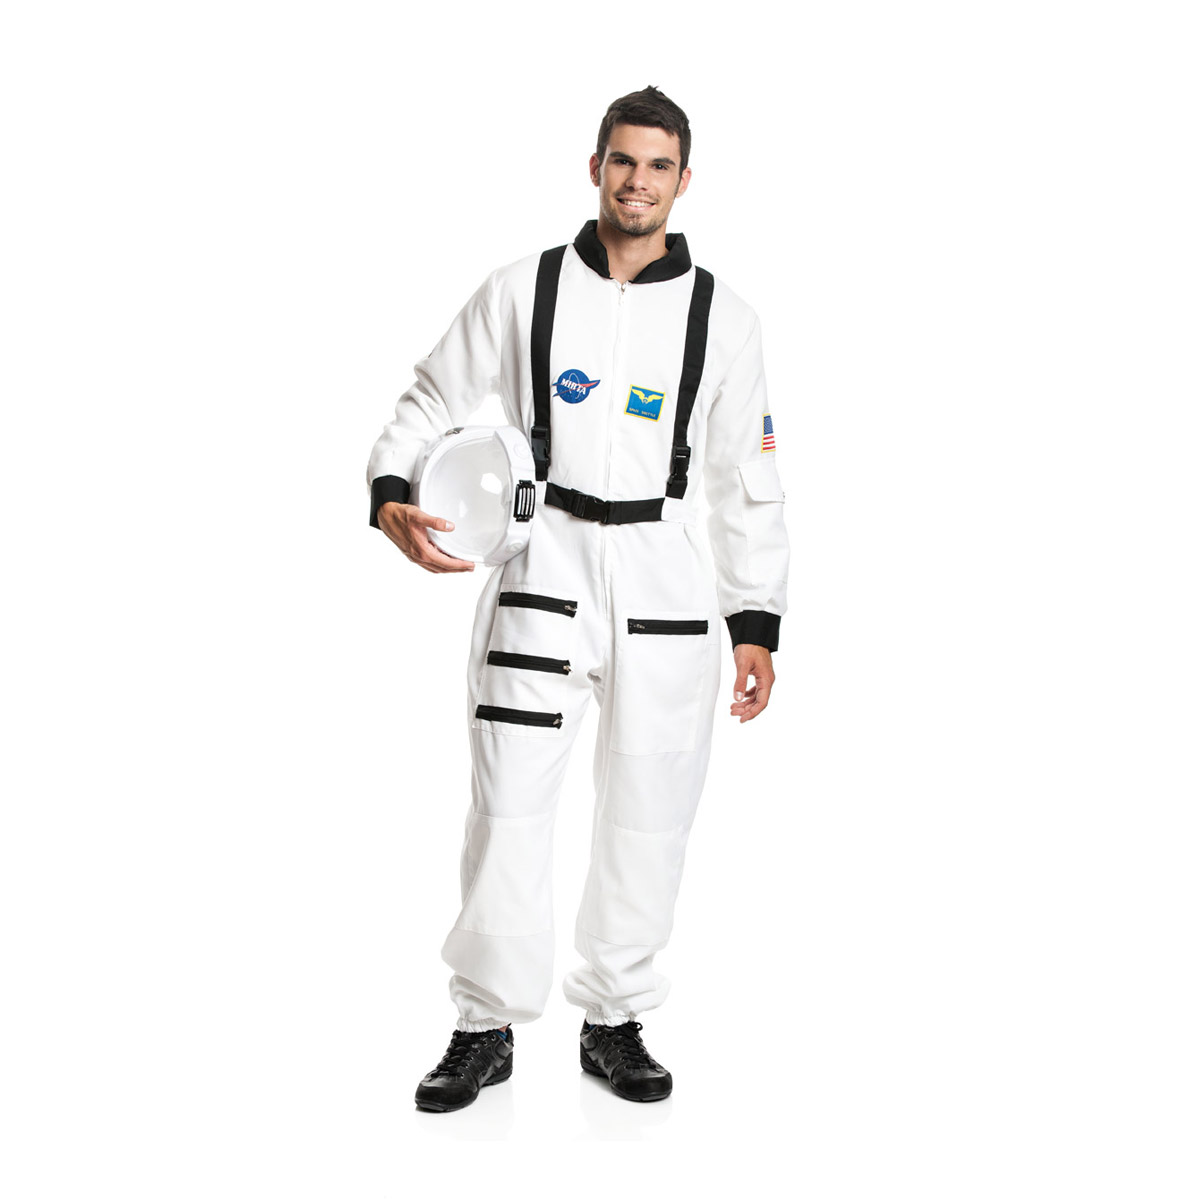 astronauten kost m herren praktisch bequemer overall kost mplanet. Black Bedroom Furniture Sets. Home Design Ideas